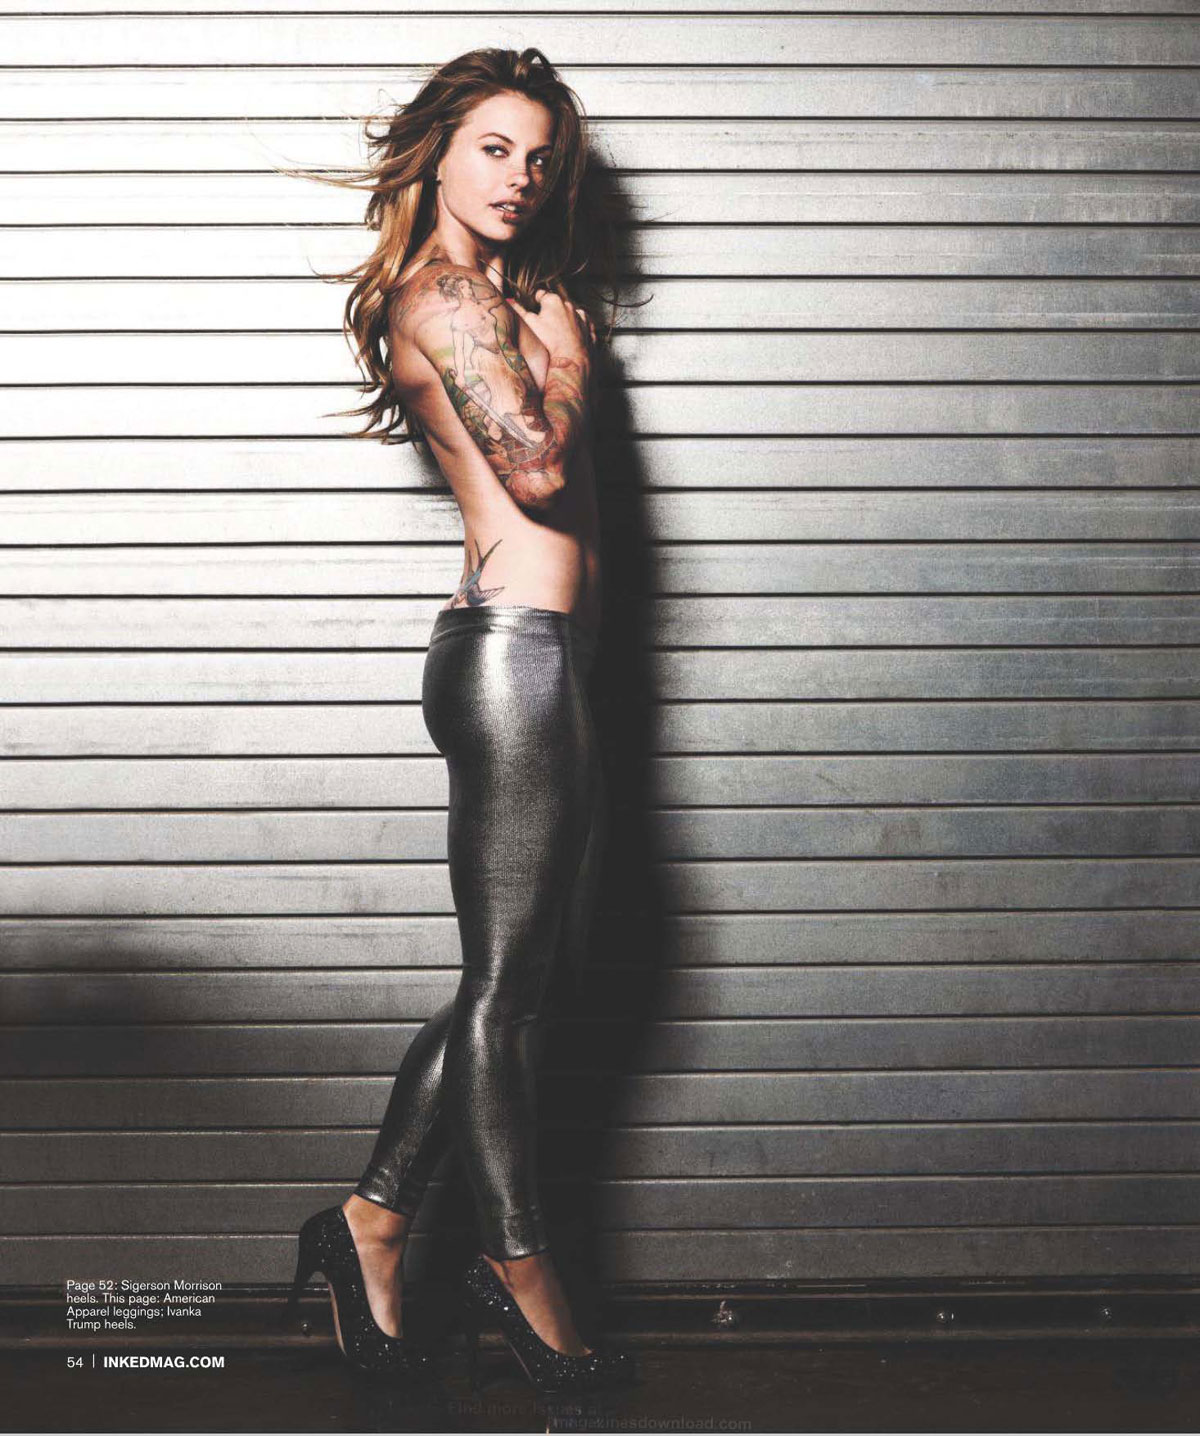 CHRISTMAS-ABBOTT-in-Inked-Magazine-November-2012-Issue-7.jpg